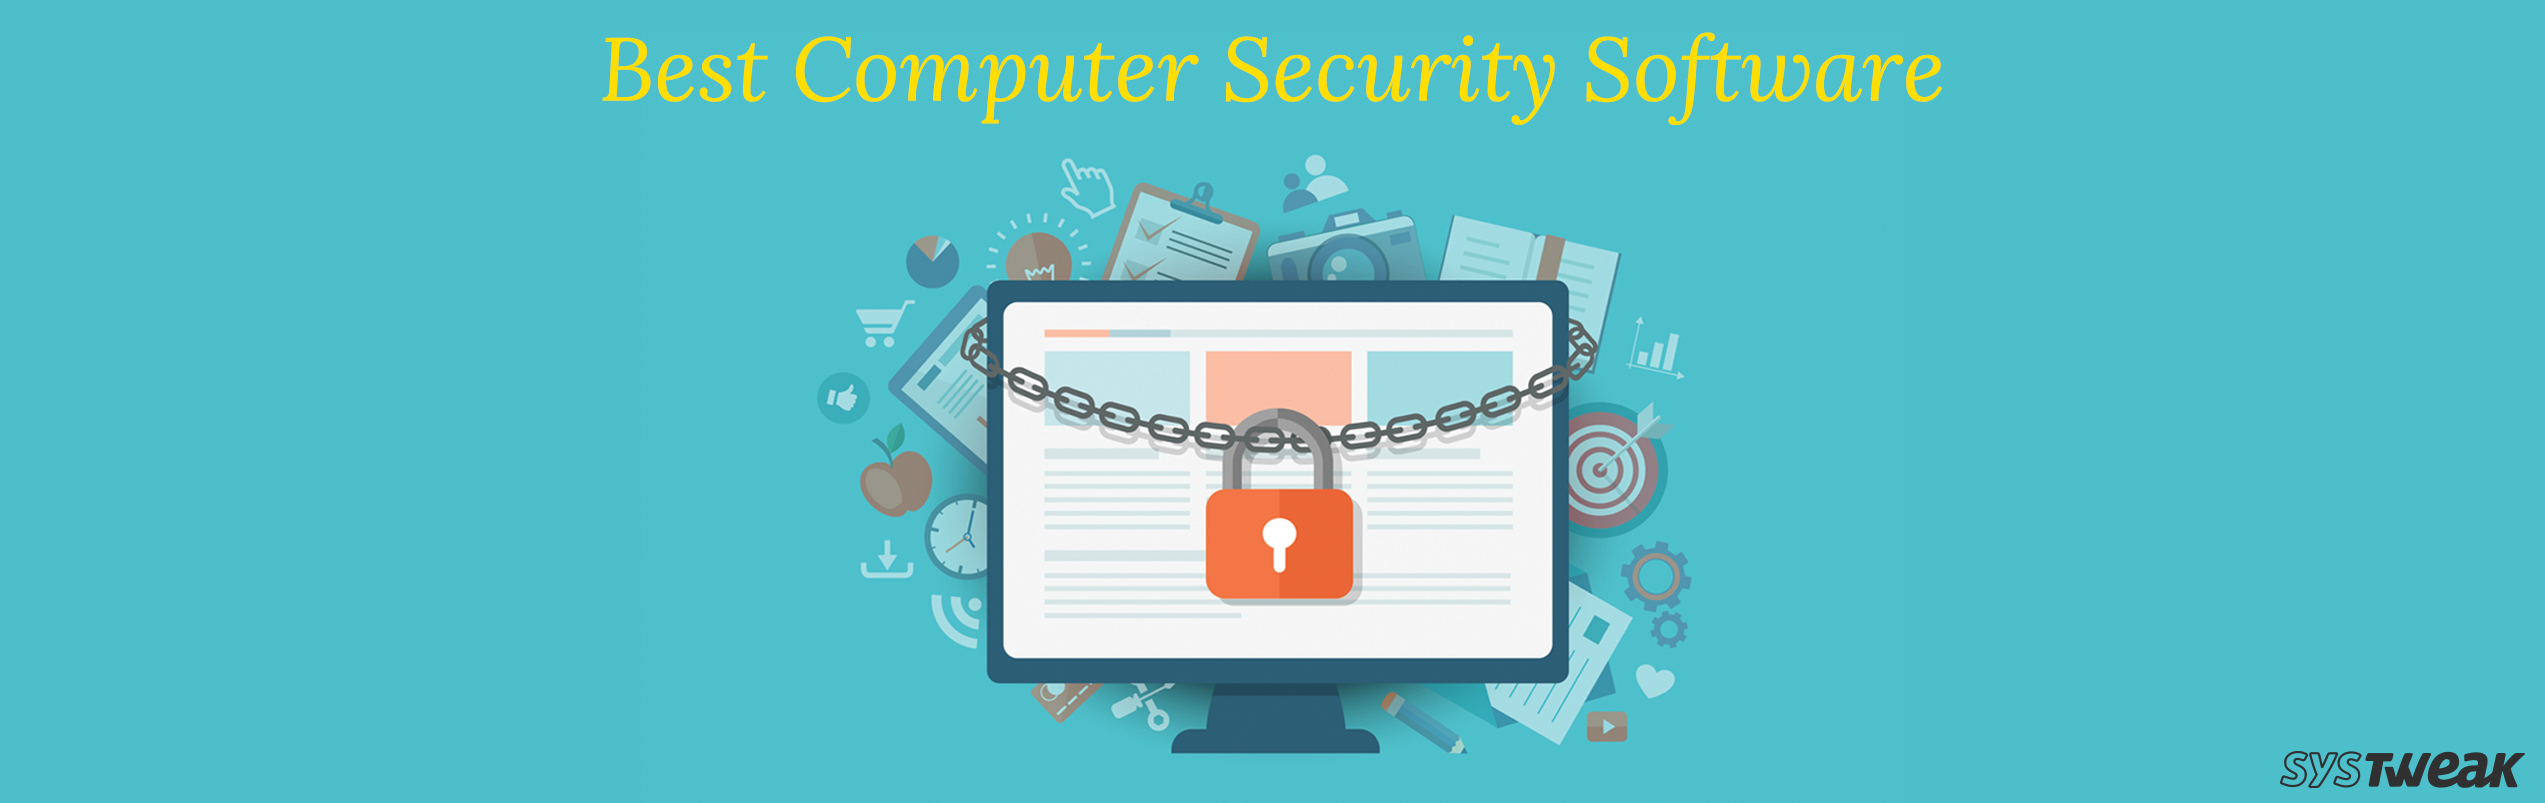 Windows 7 Best Software Security